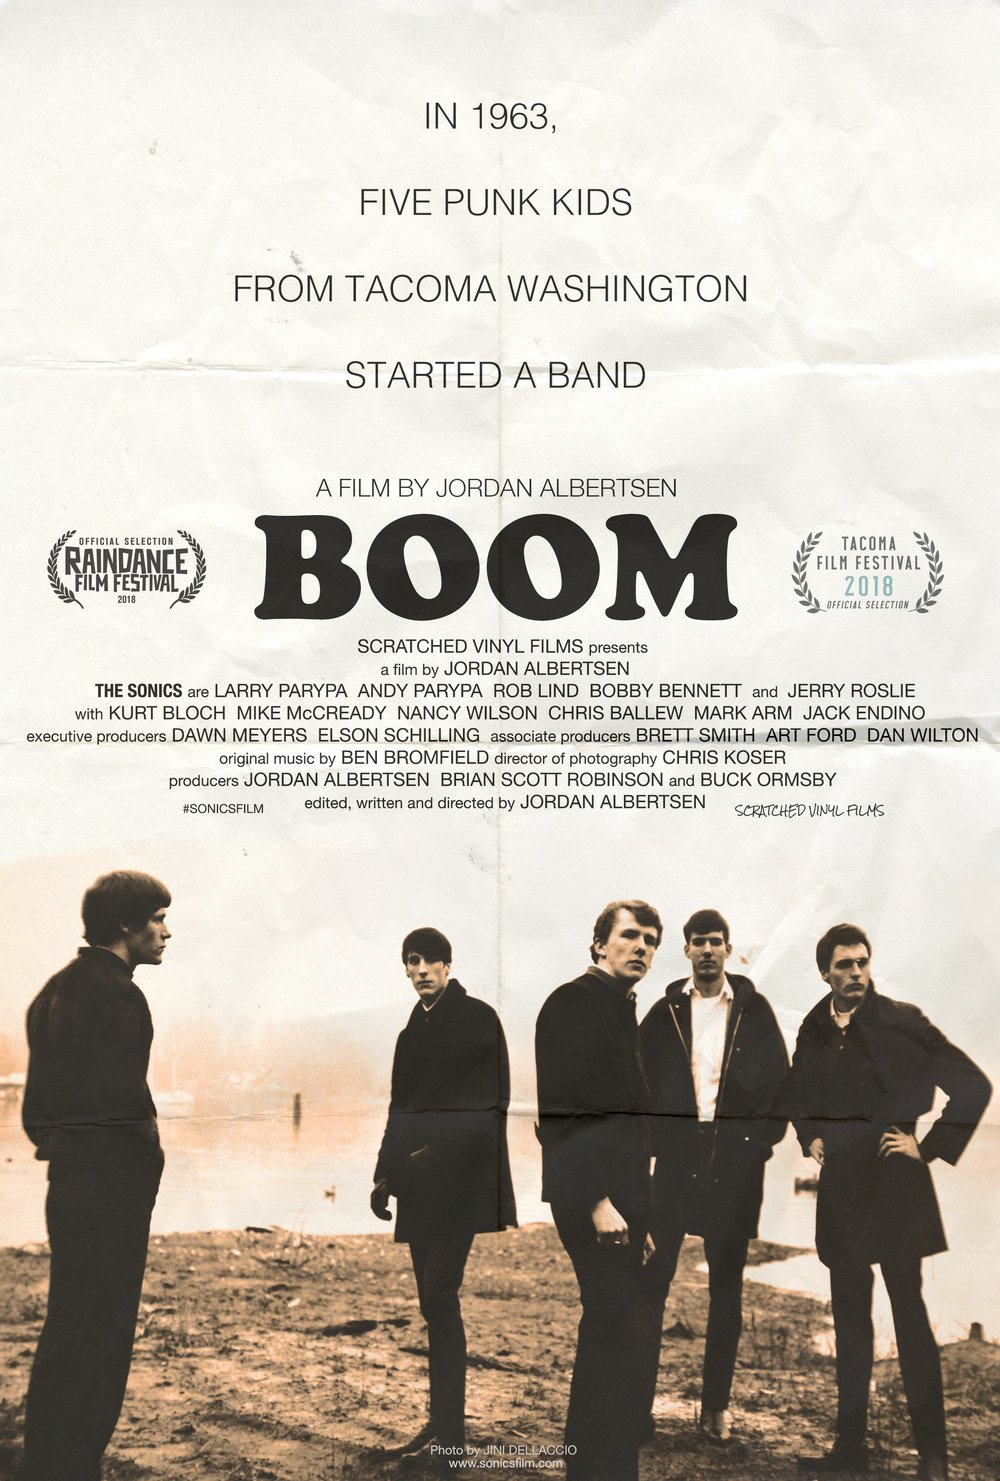 """Boom!"" - Feature Doc. The Sonics - (prod.) Brian Robinson - (dir.) Jordan Alberston - Sound Design & Audio Post Production by Jack Goodman -- tells the untold story of one of rock 'n' roll's wildest and most influential bands, The Sonics."